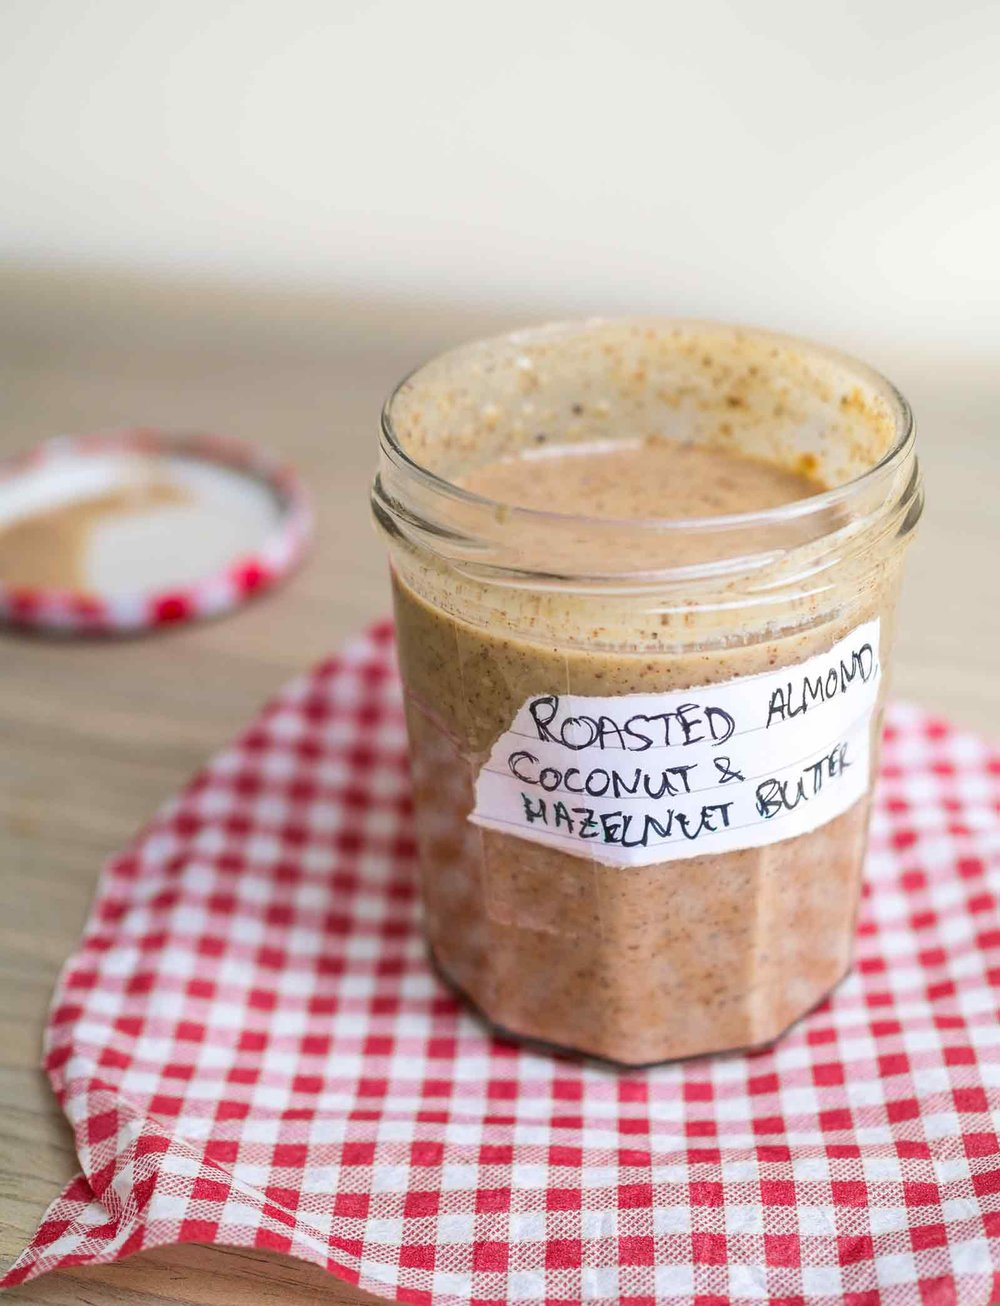 Roasted Almond, Coconut And Hazelnut Butter